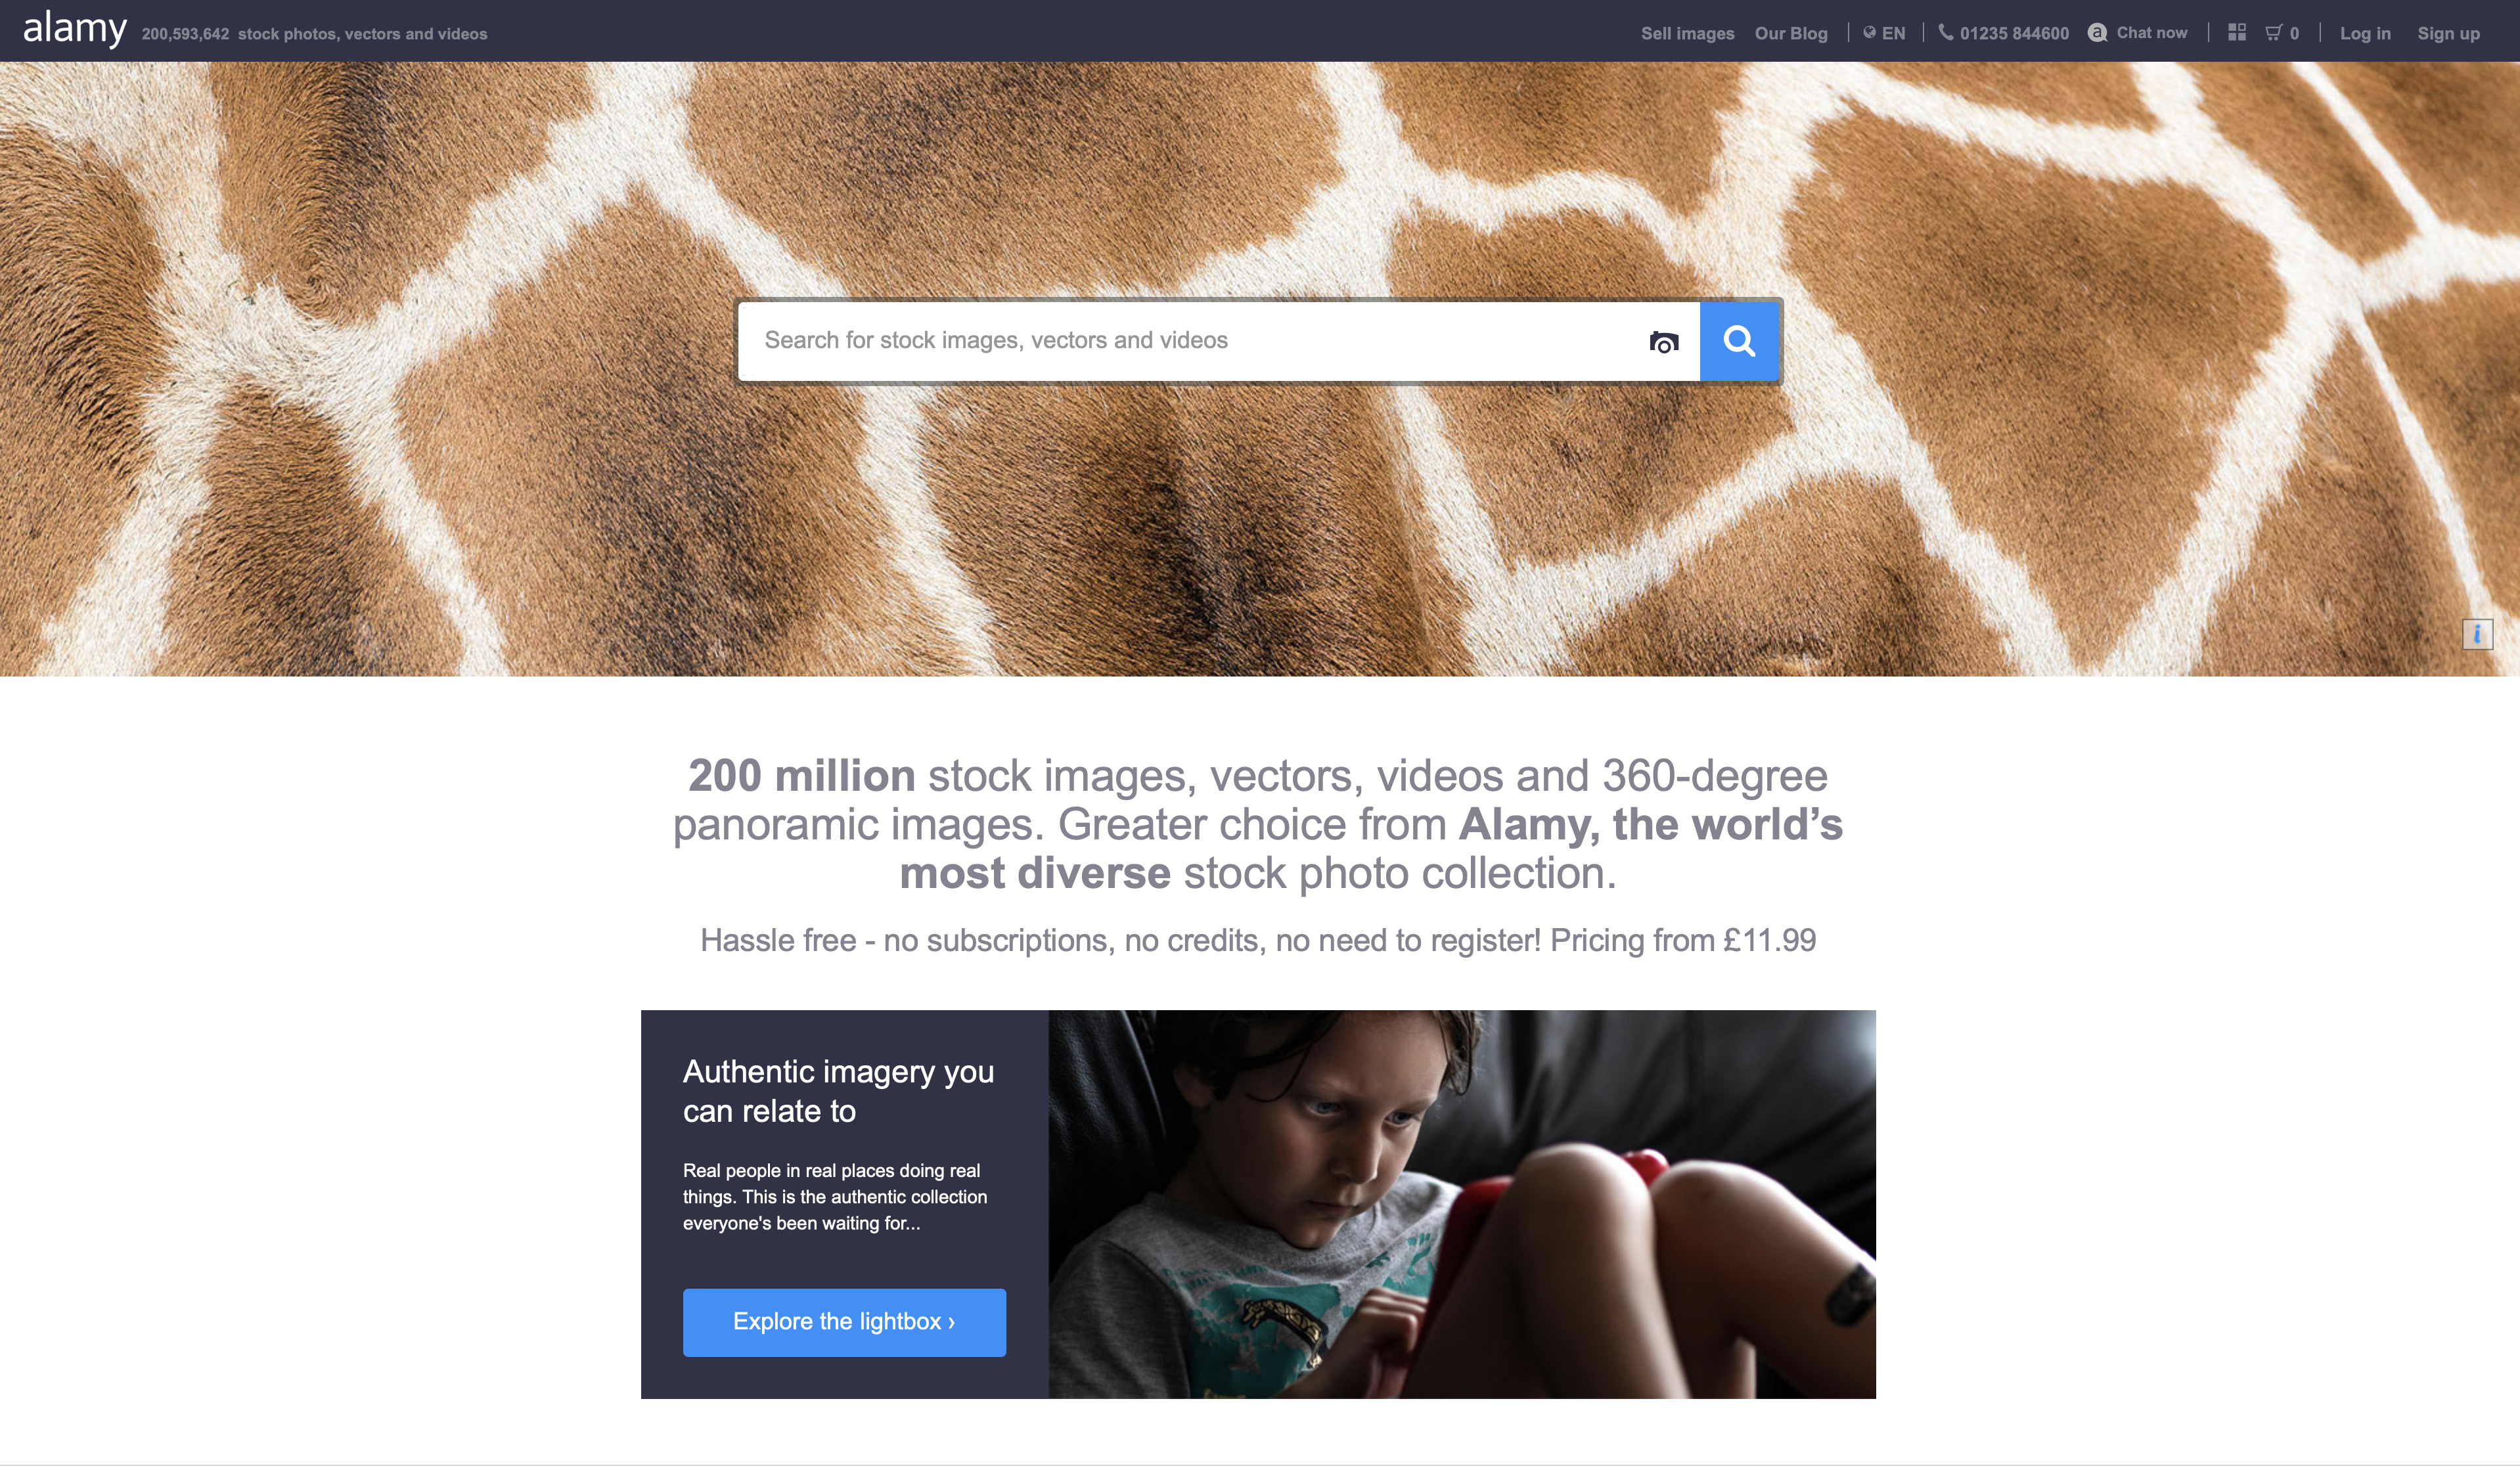 Alamy is a good alternative for selling photos